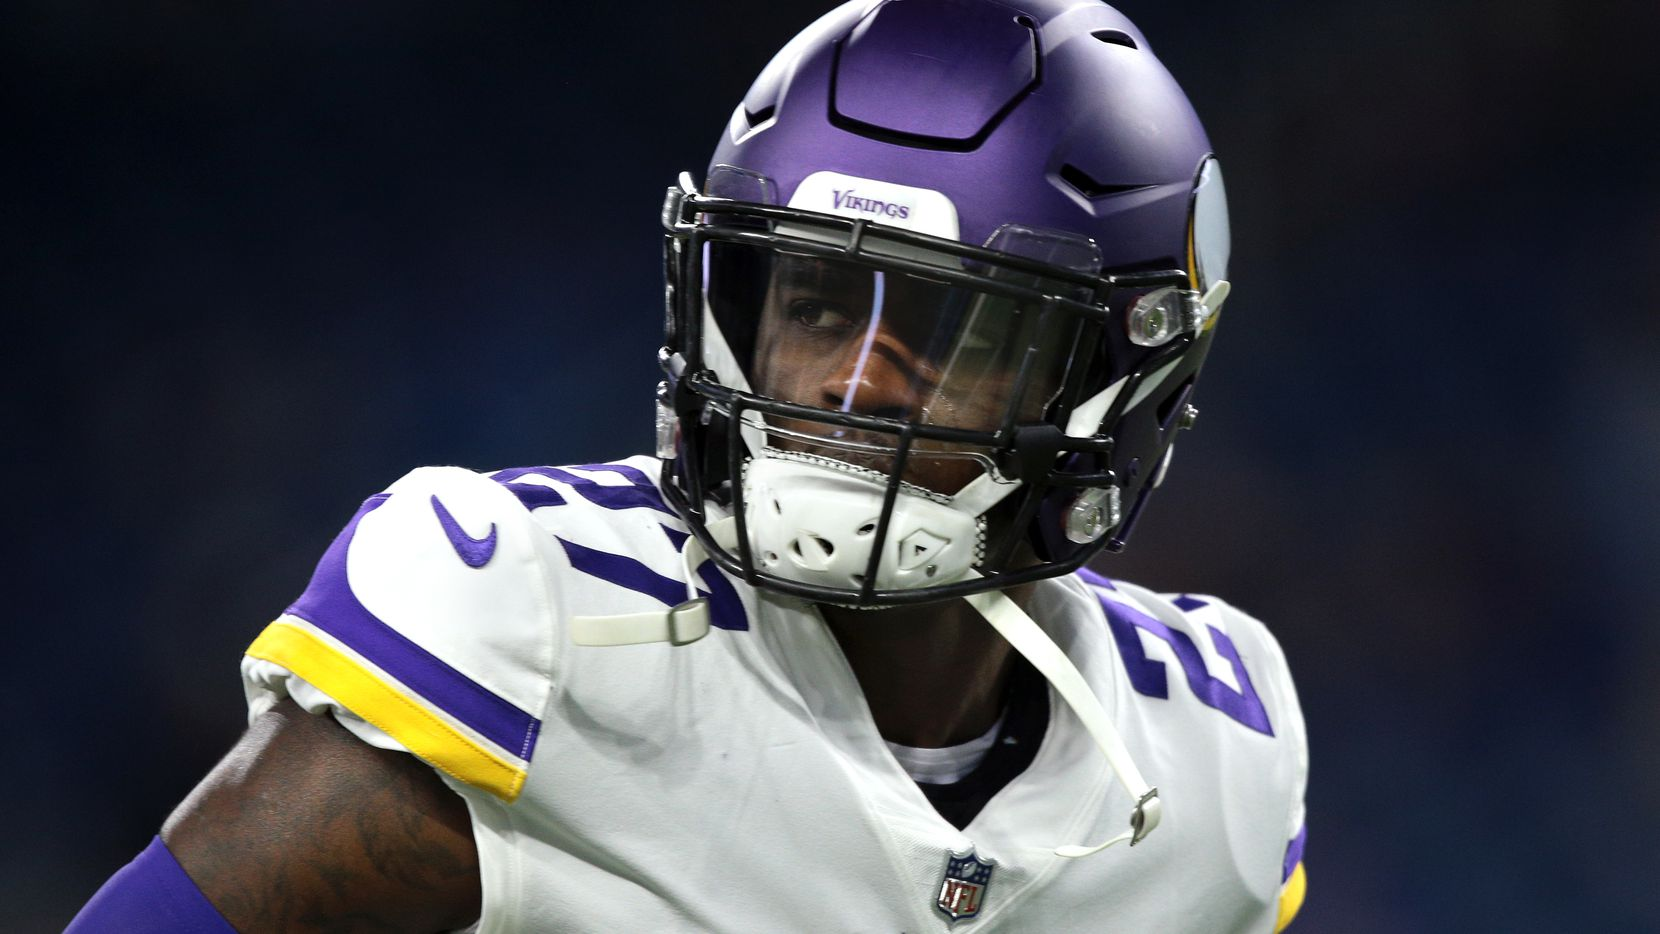 Minnesota Vikings safety Jayron Kearse (27) is seen during the first half of an NFL football game against the Detroit Lions in Detroit, Michigan USA, on Sunday, December 23,  2018.